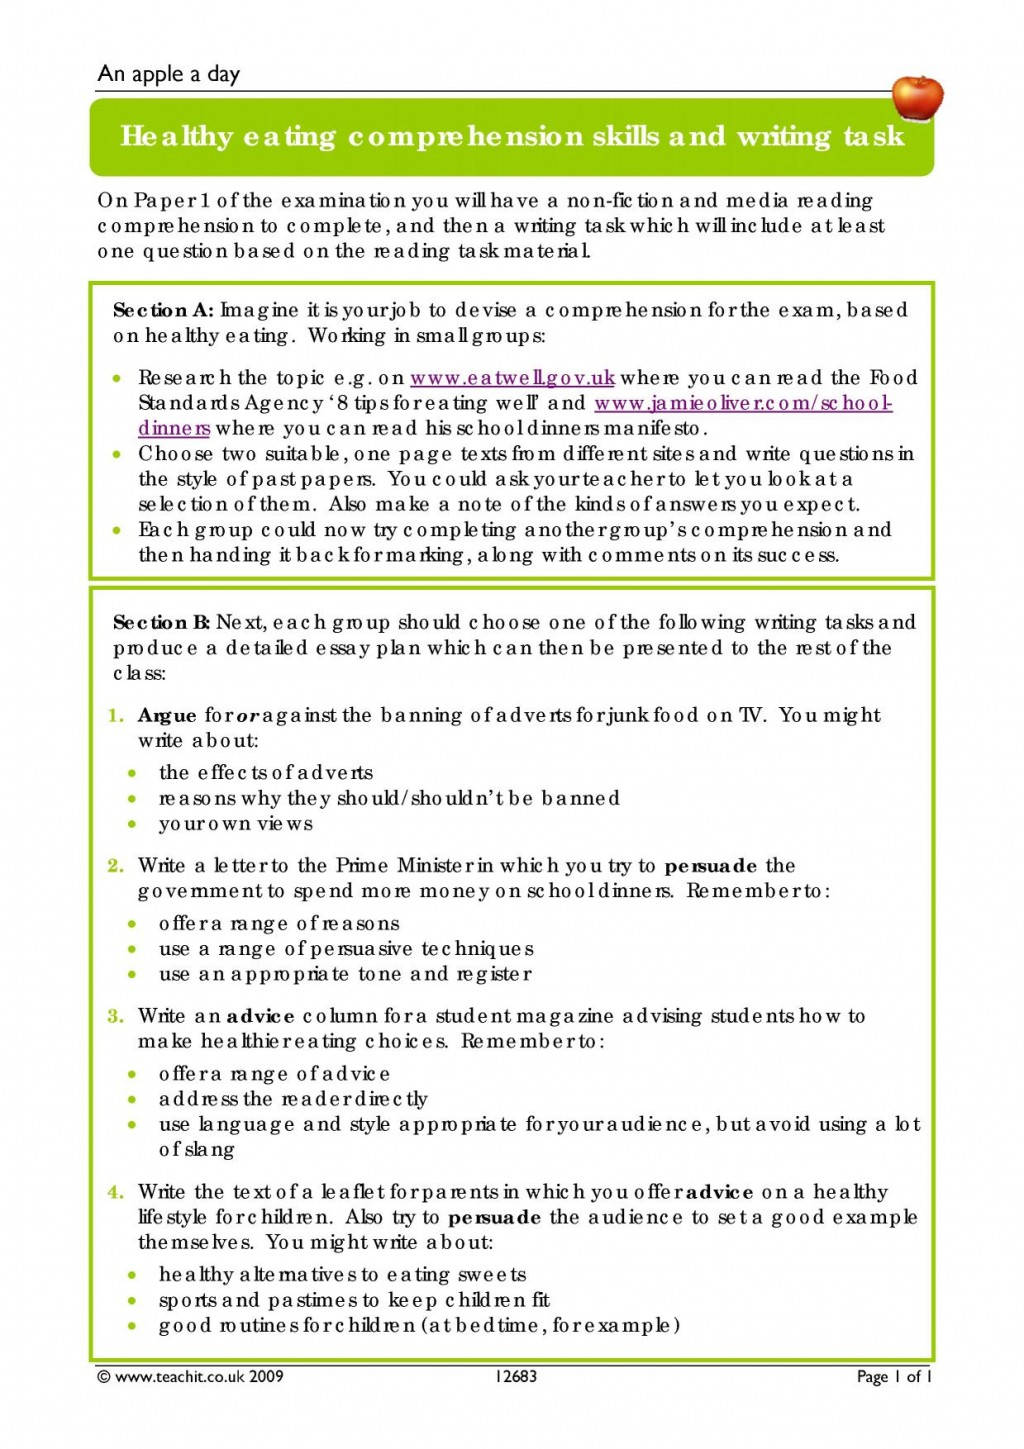 007 X16623 Php Pagespeed Ic Rgoow58ty Food Inc Essay Top Questions Topics Pdf Large